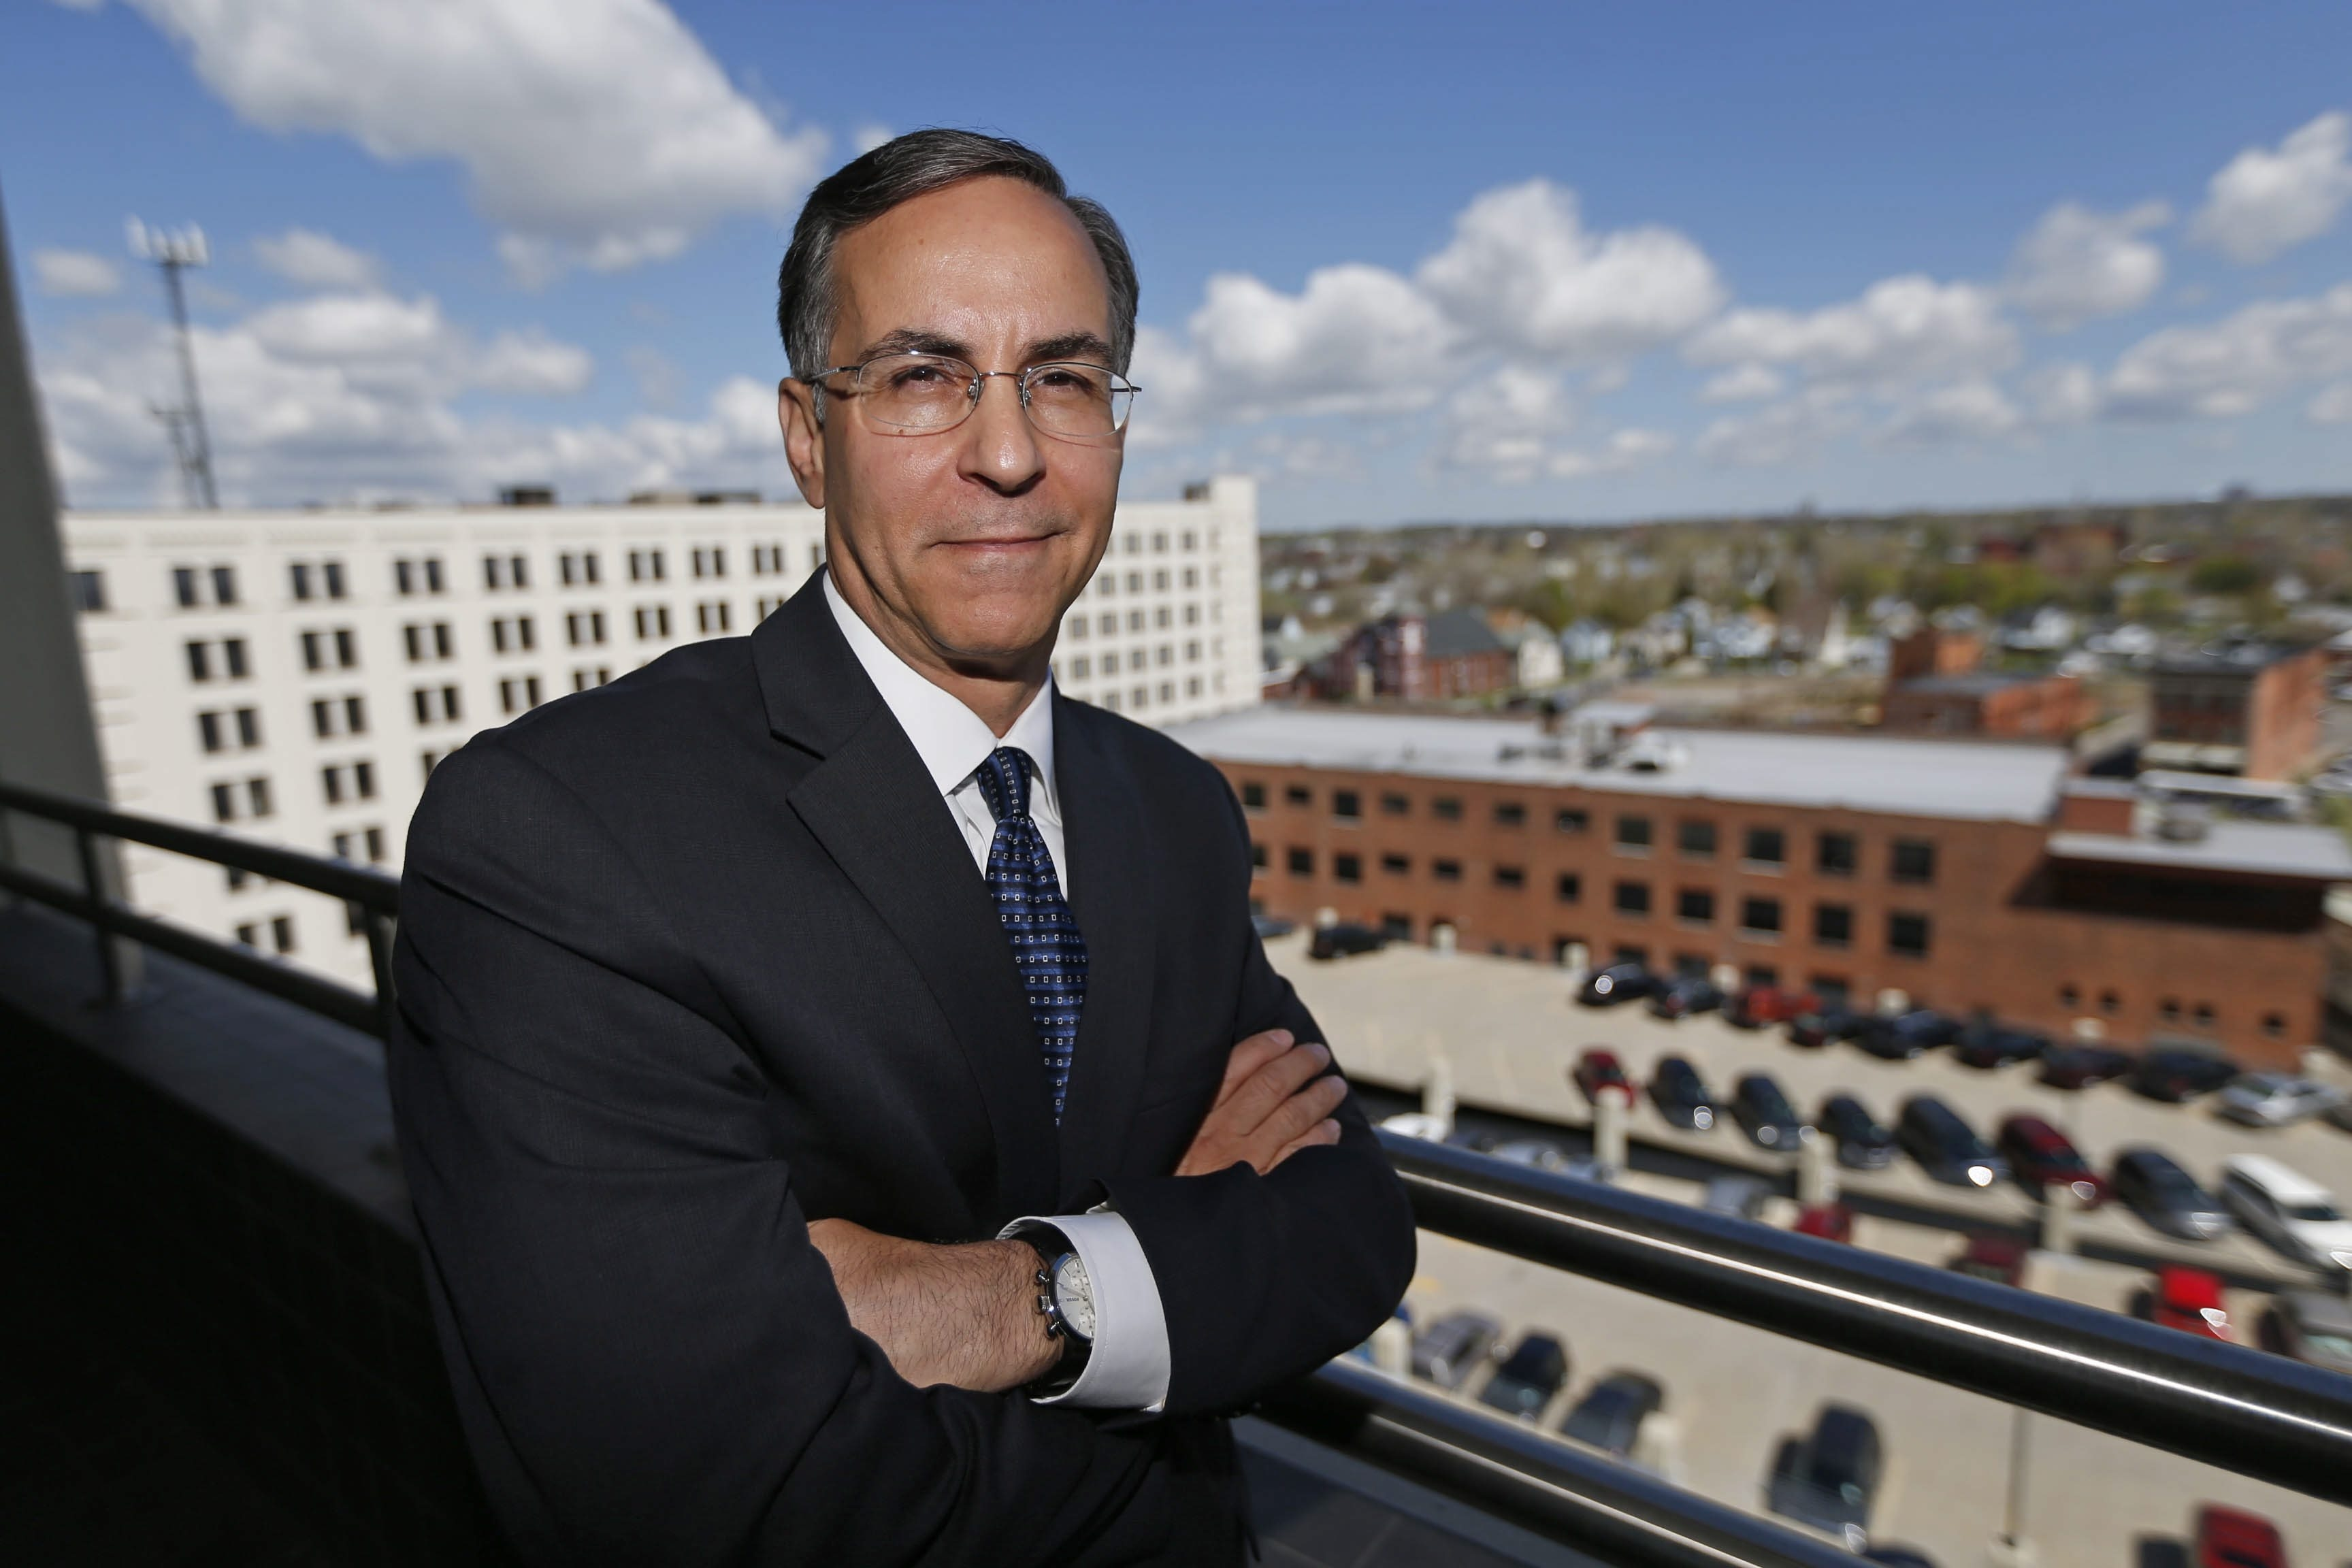 """""""Only about 5 percent of small and medium-size enterprises export, so there is a tremendous opportunity right here in Western New York,"""" said John Manzella."""